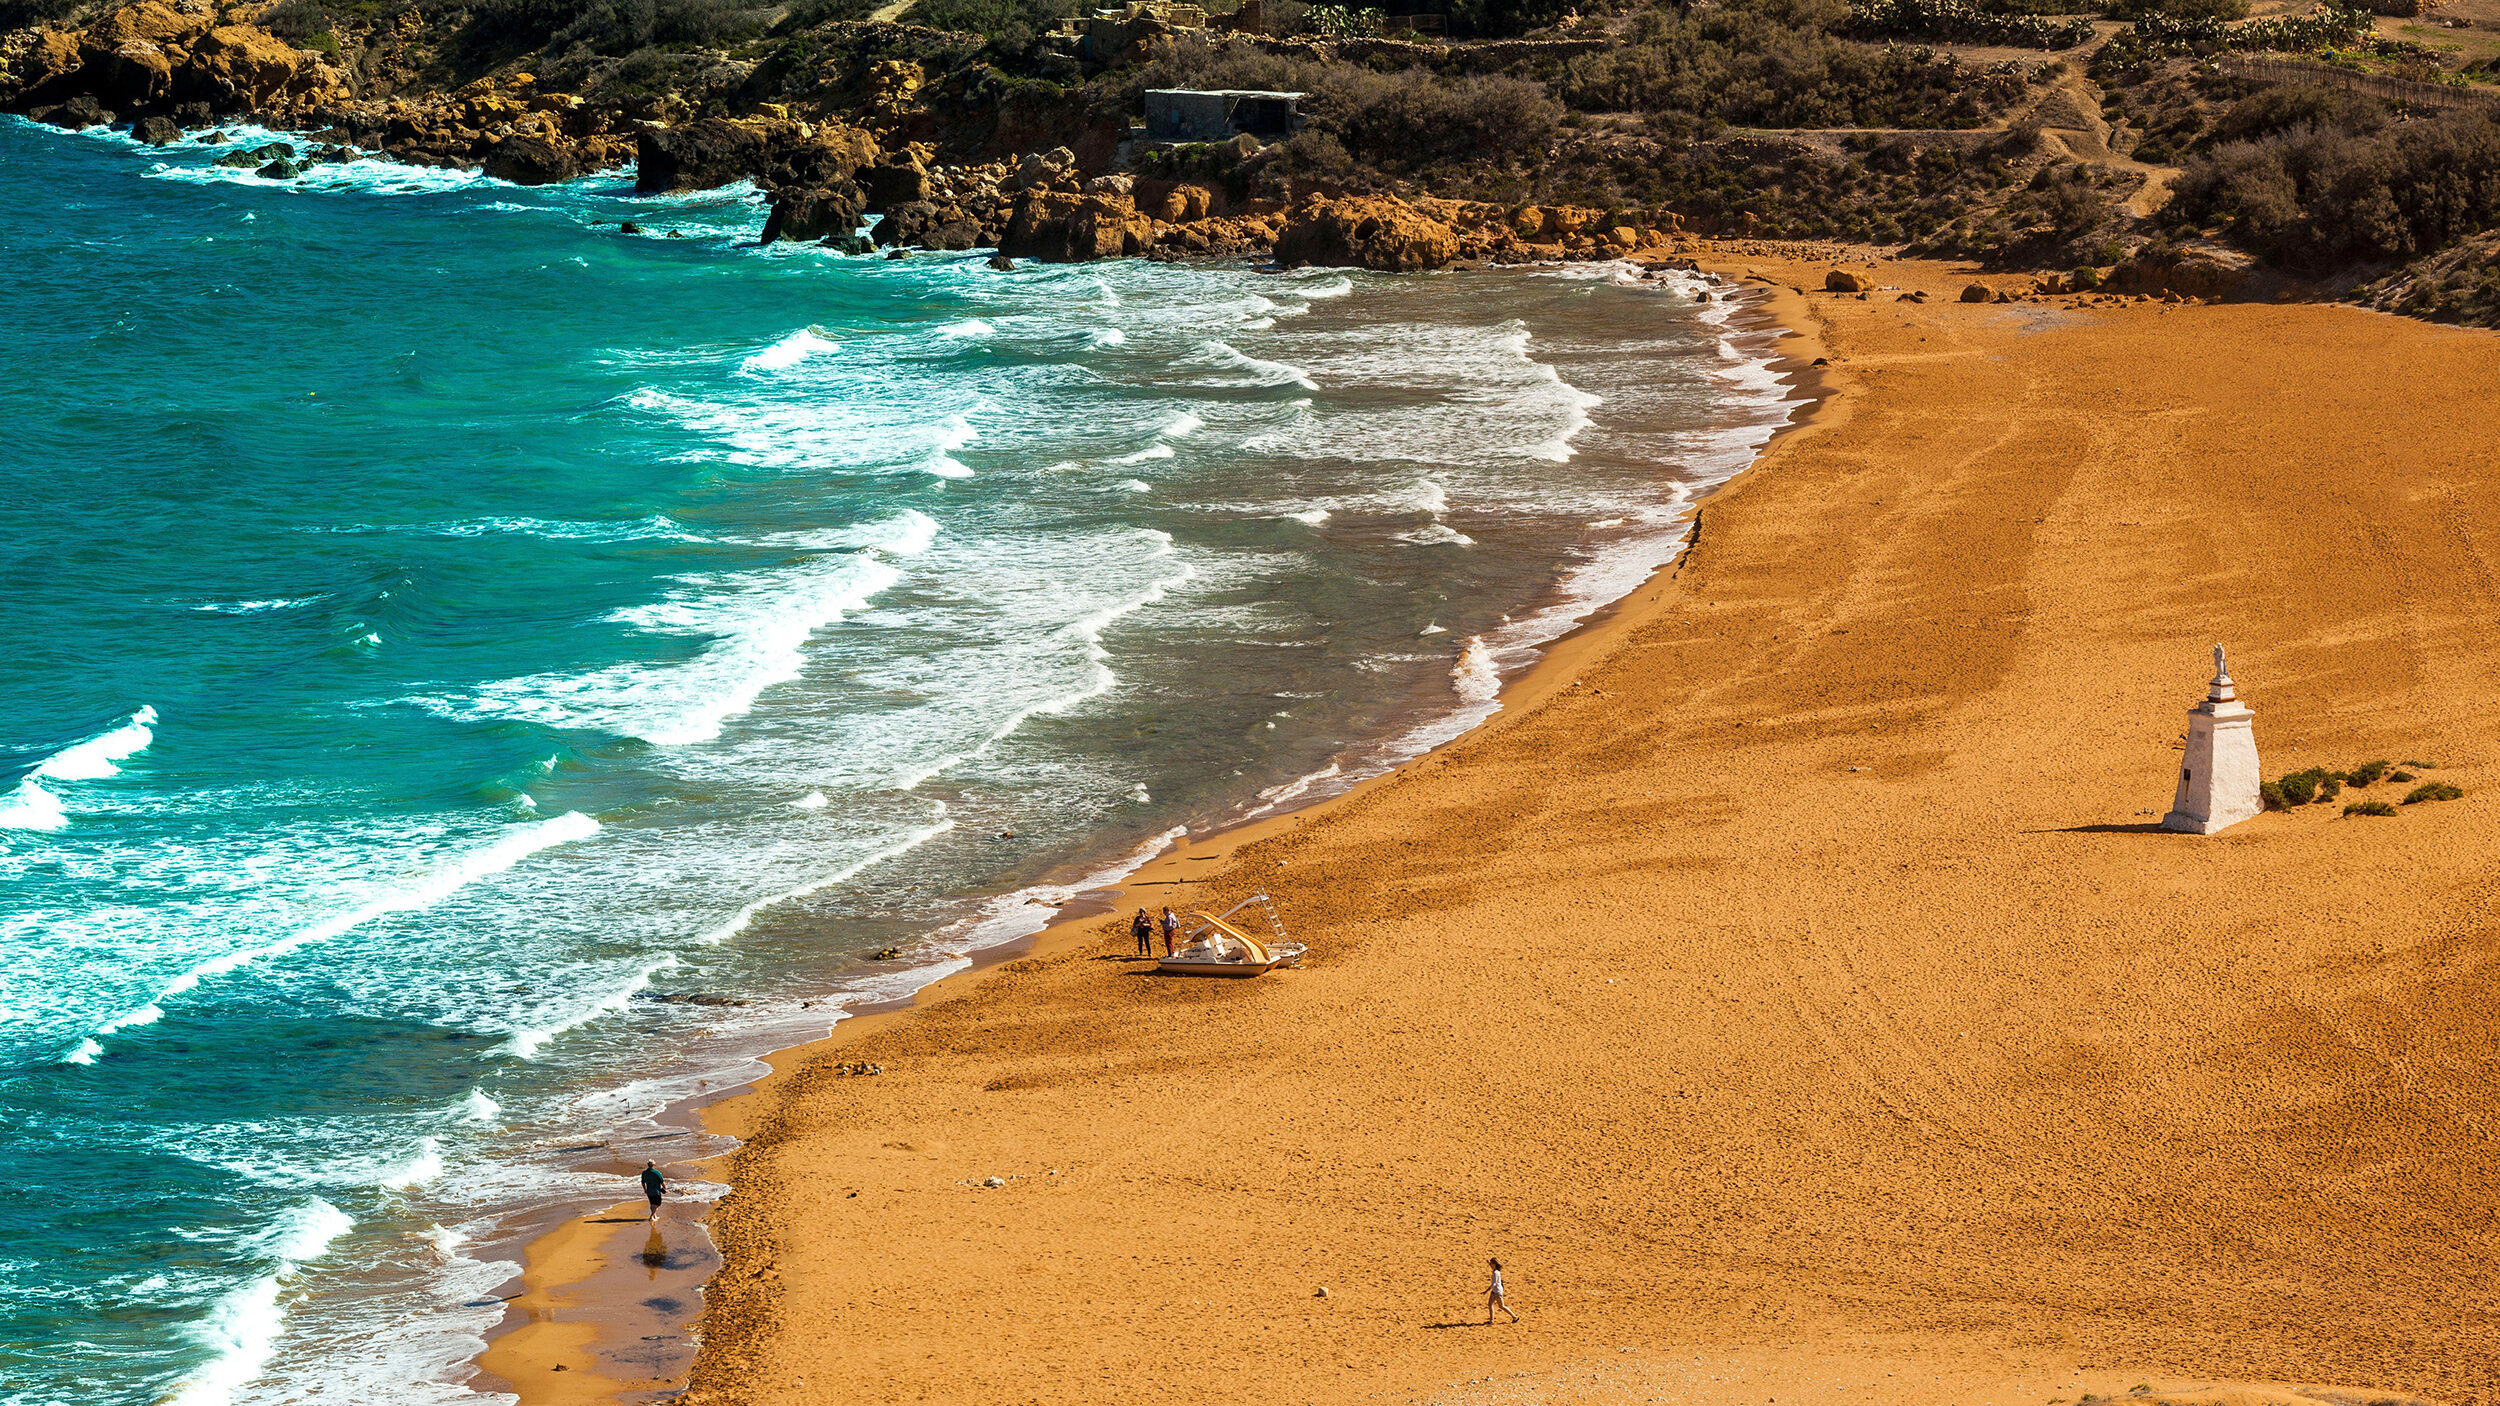 The Best Beaches to Visit in Malta